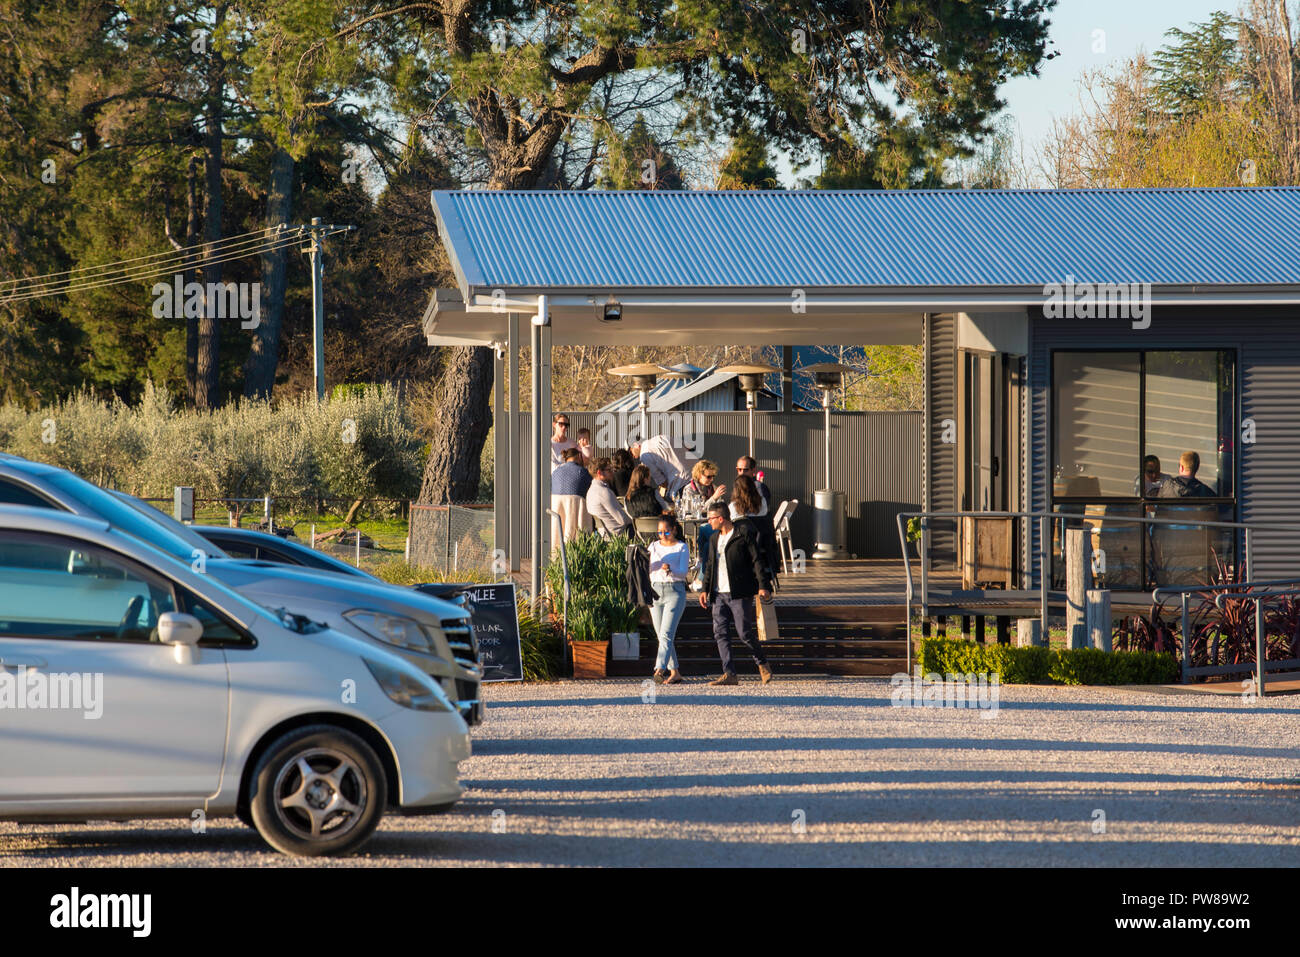 People sampling, tasting and buying wine at the tasting room of Rowlee Wines at Nashdale near Orange in New South Wales, Australia - Stock Image